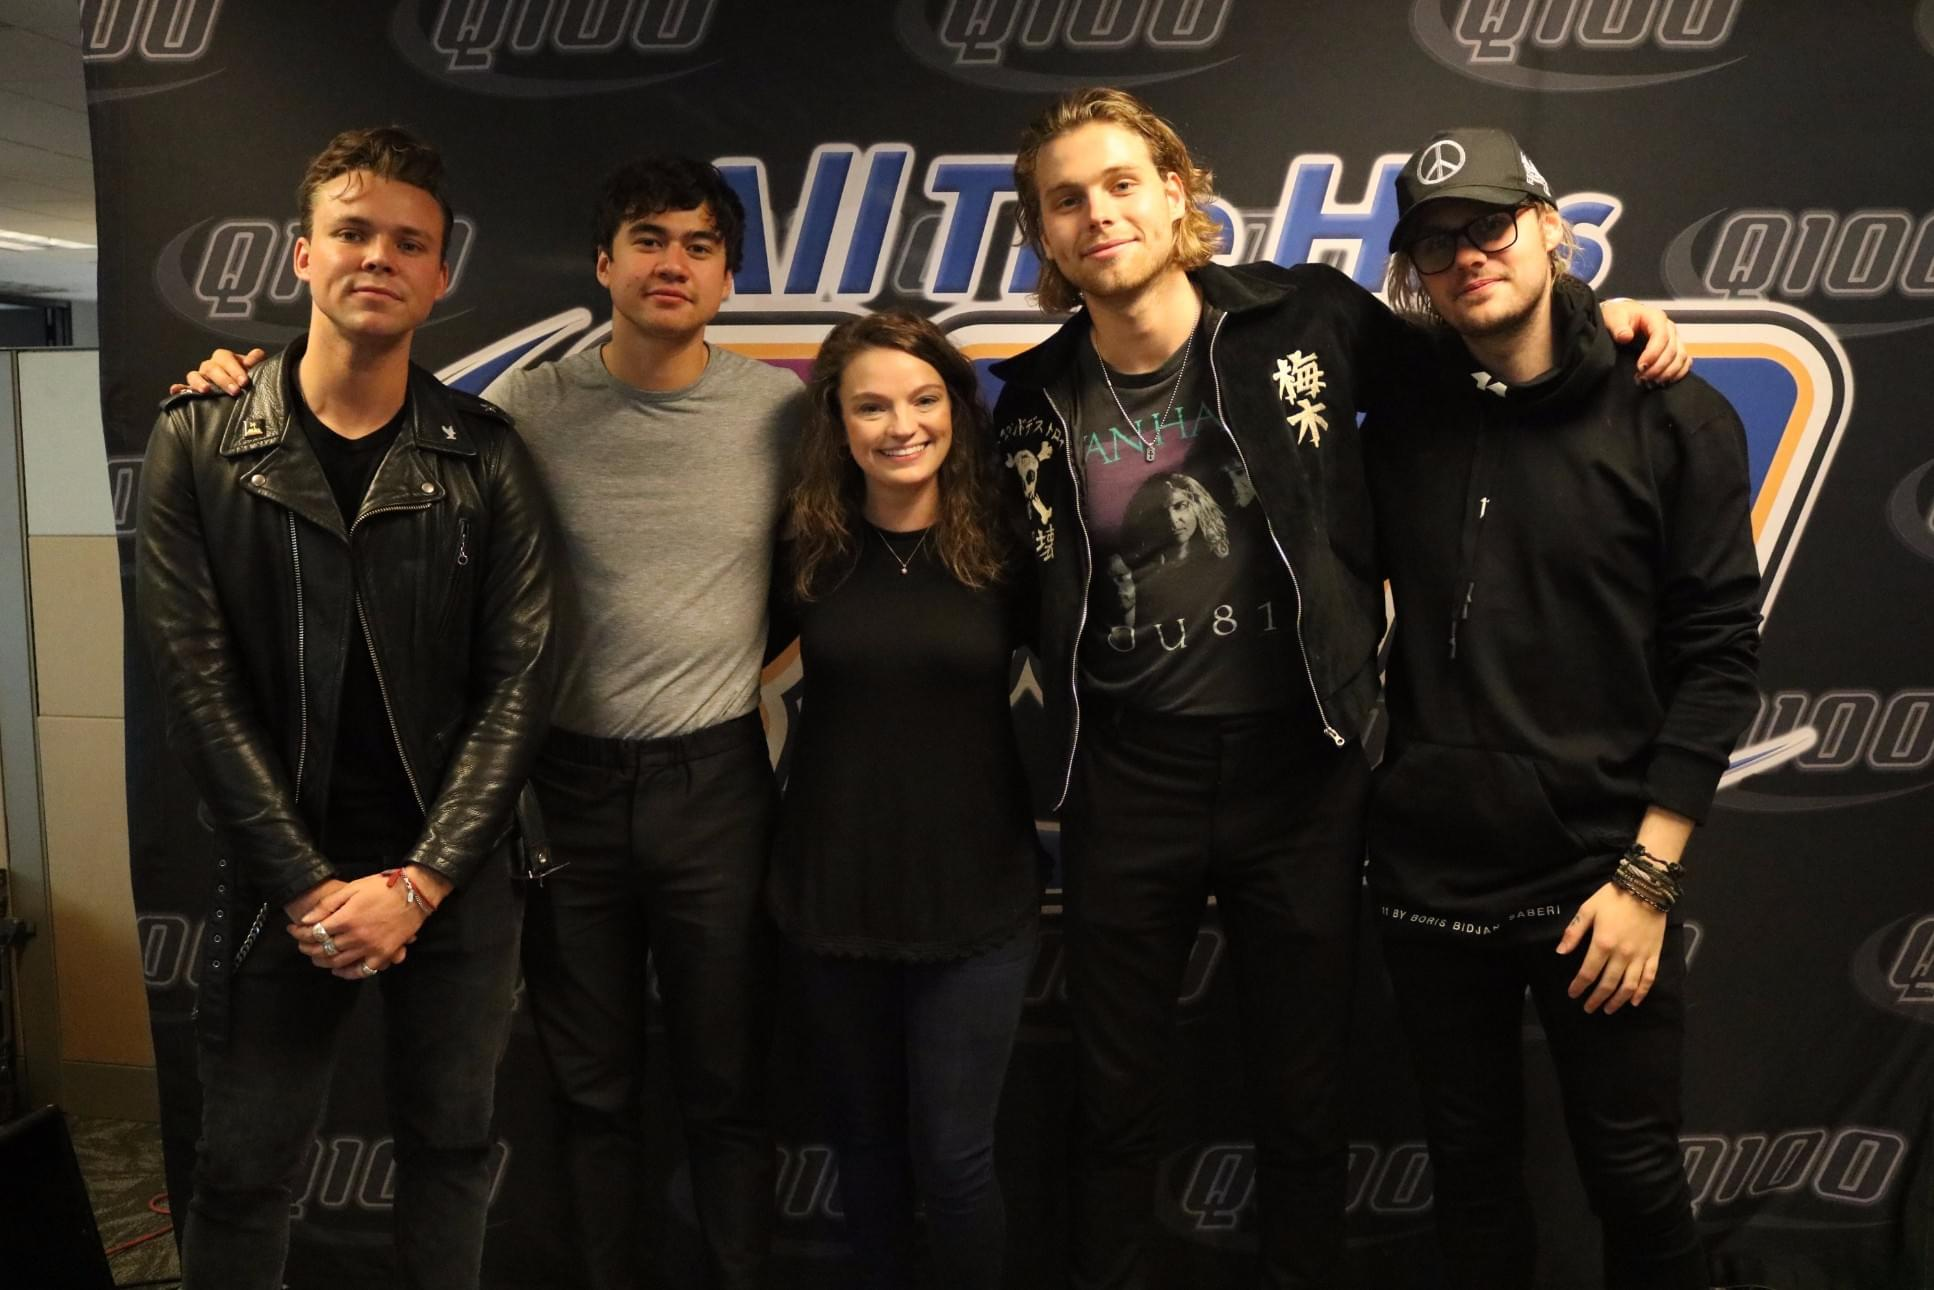 5 seconds of summer meet greet photos q100 wwwq fm 5 seconds of summer meet greet photos m4hsunfo